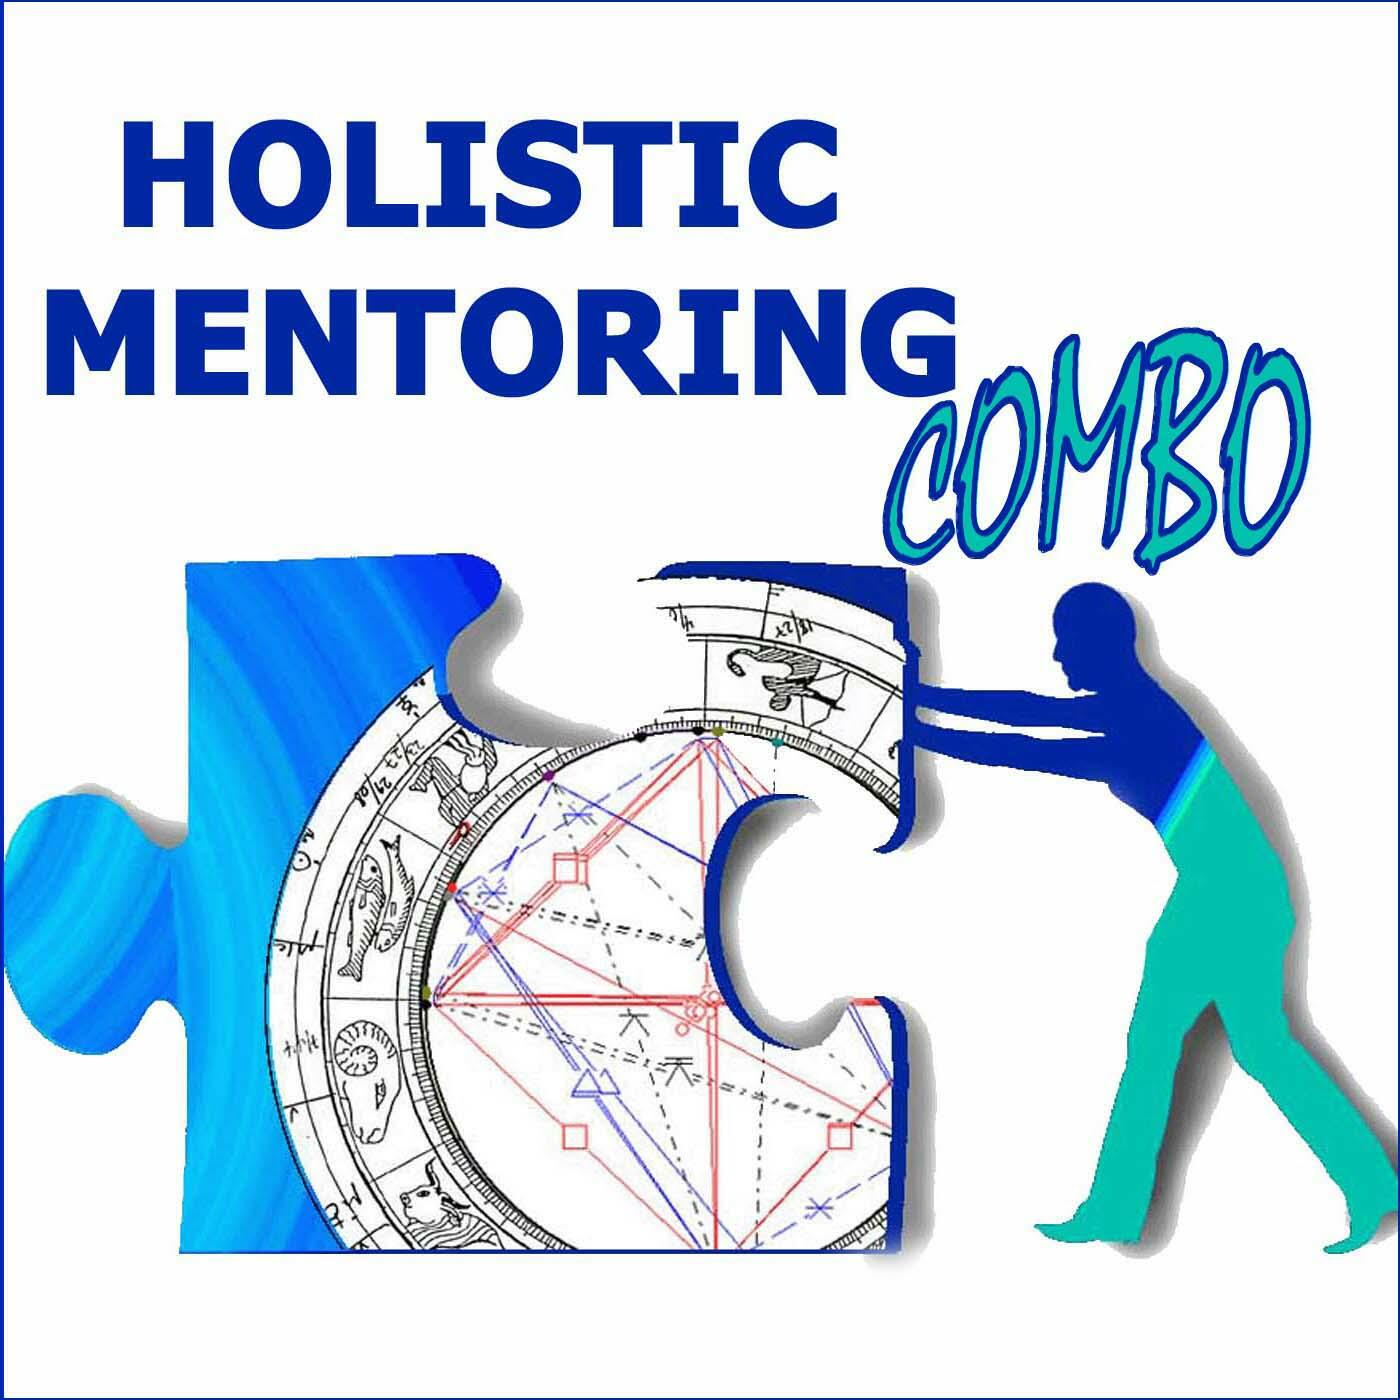 holistic mentoring combo transformational stories highlighting holistic mentoring combo transformational stories highlighting the engineering of joyful lives and successful careers podcast stream listen